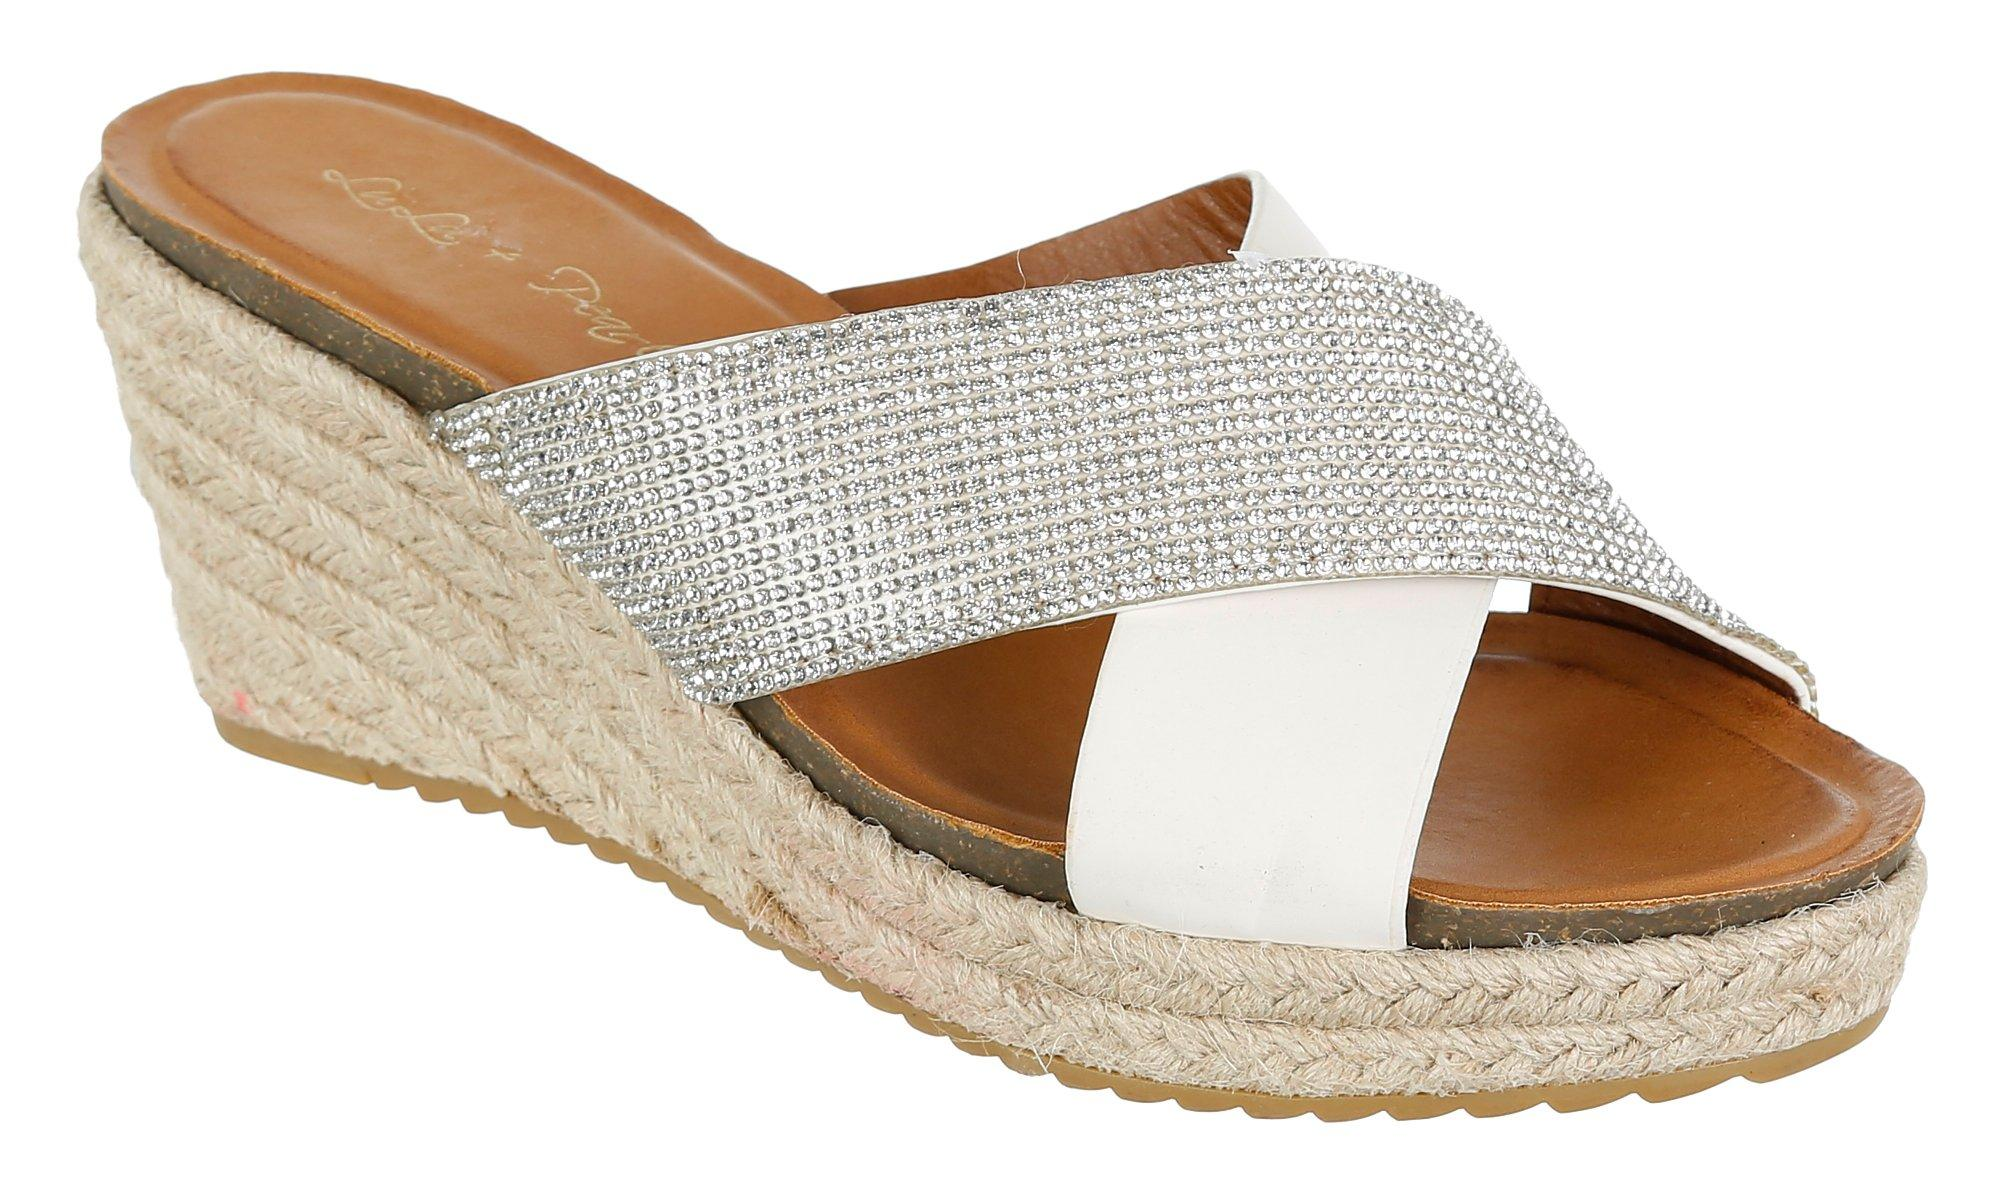 48b1ae8935dad Linley Espadrille Wedges - Brown   Burkes Outlet